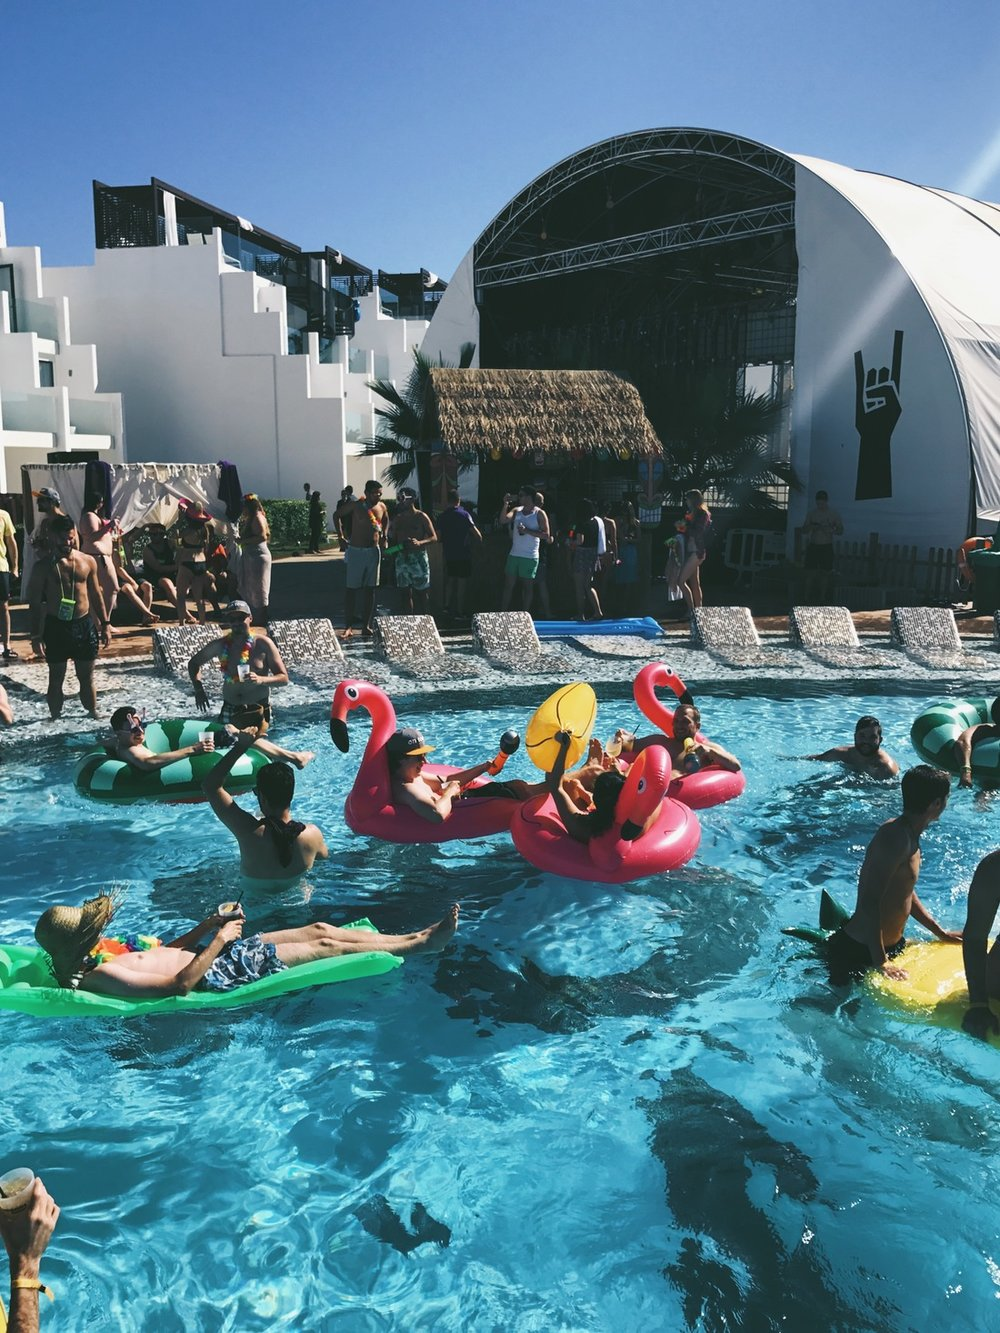 trivago On Tour Pool Party pool floats